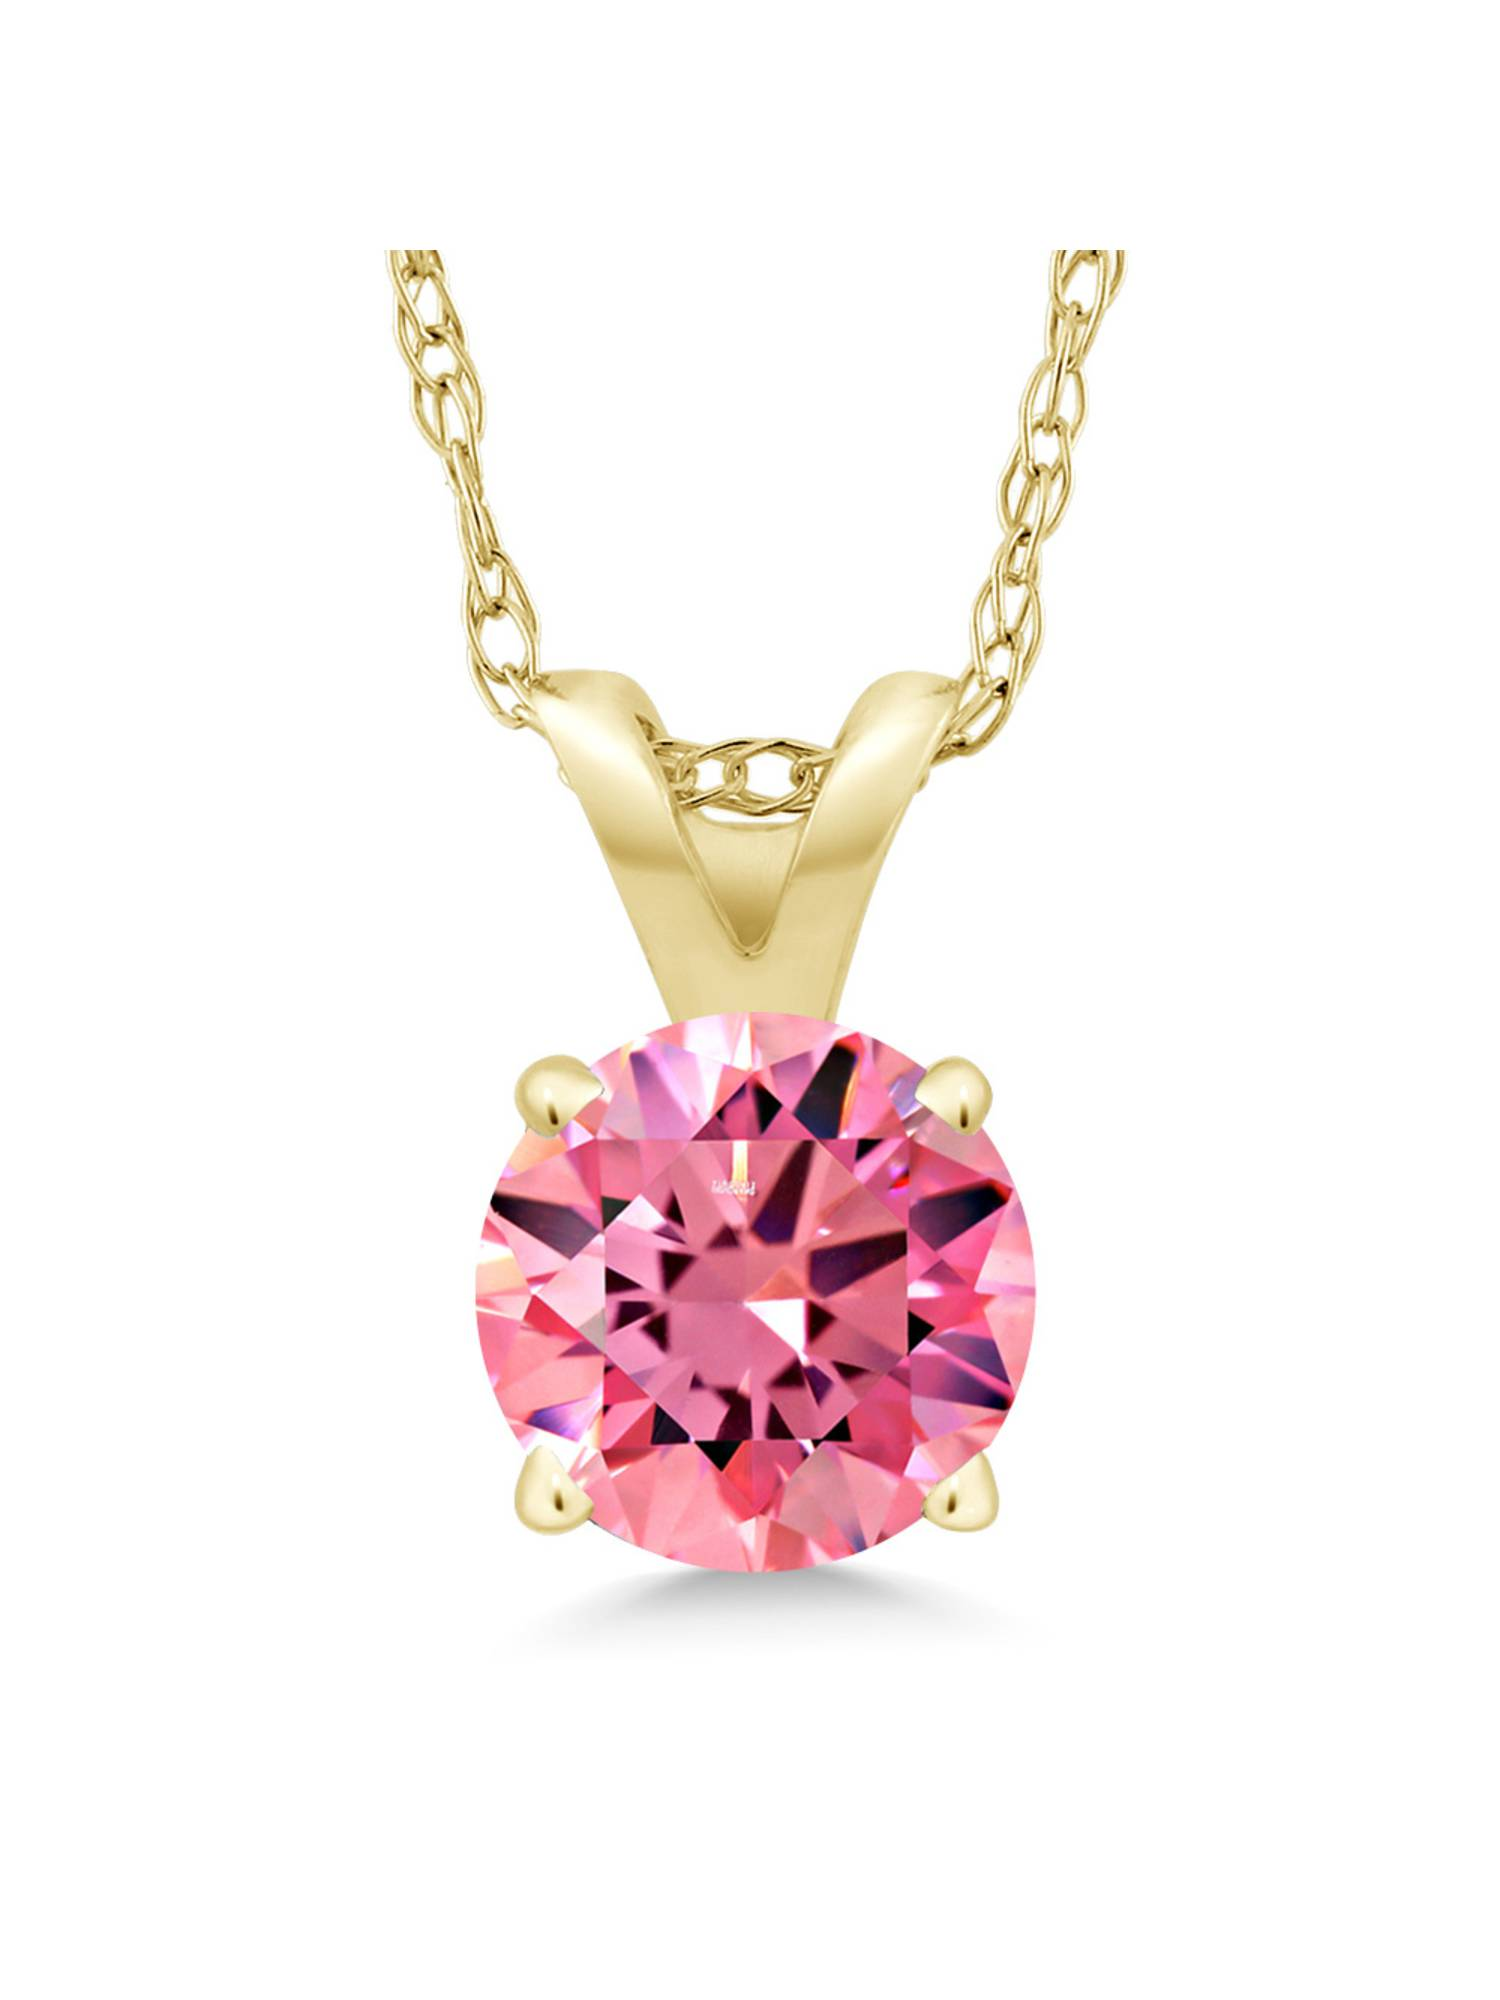 0.46 Ct Fancy Pink 14K Yellow Gold Pendant Made With Swarovski Zirconia by